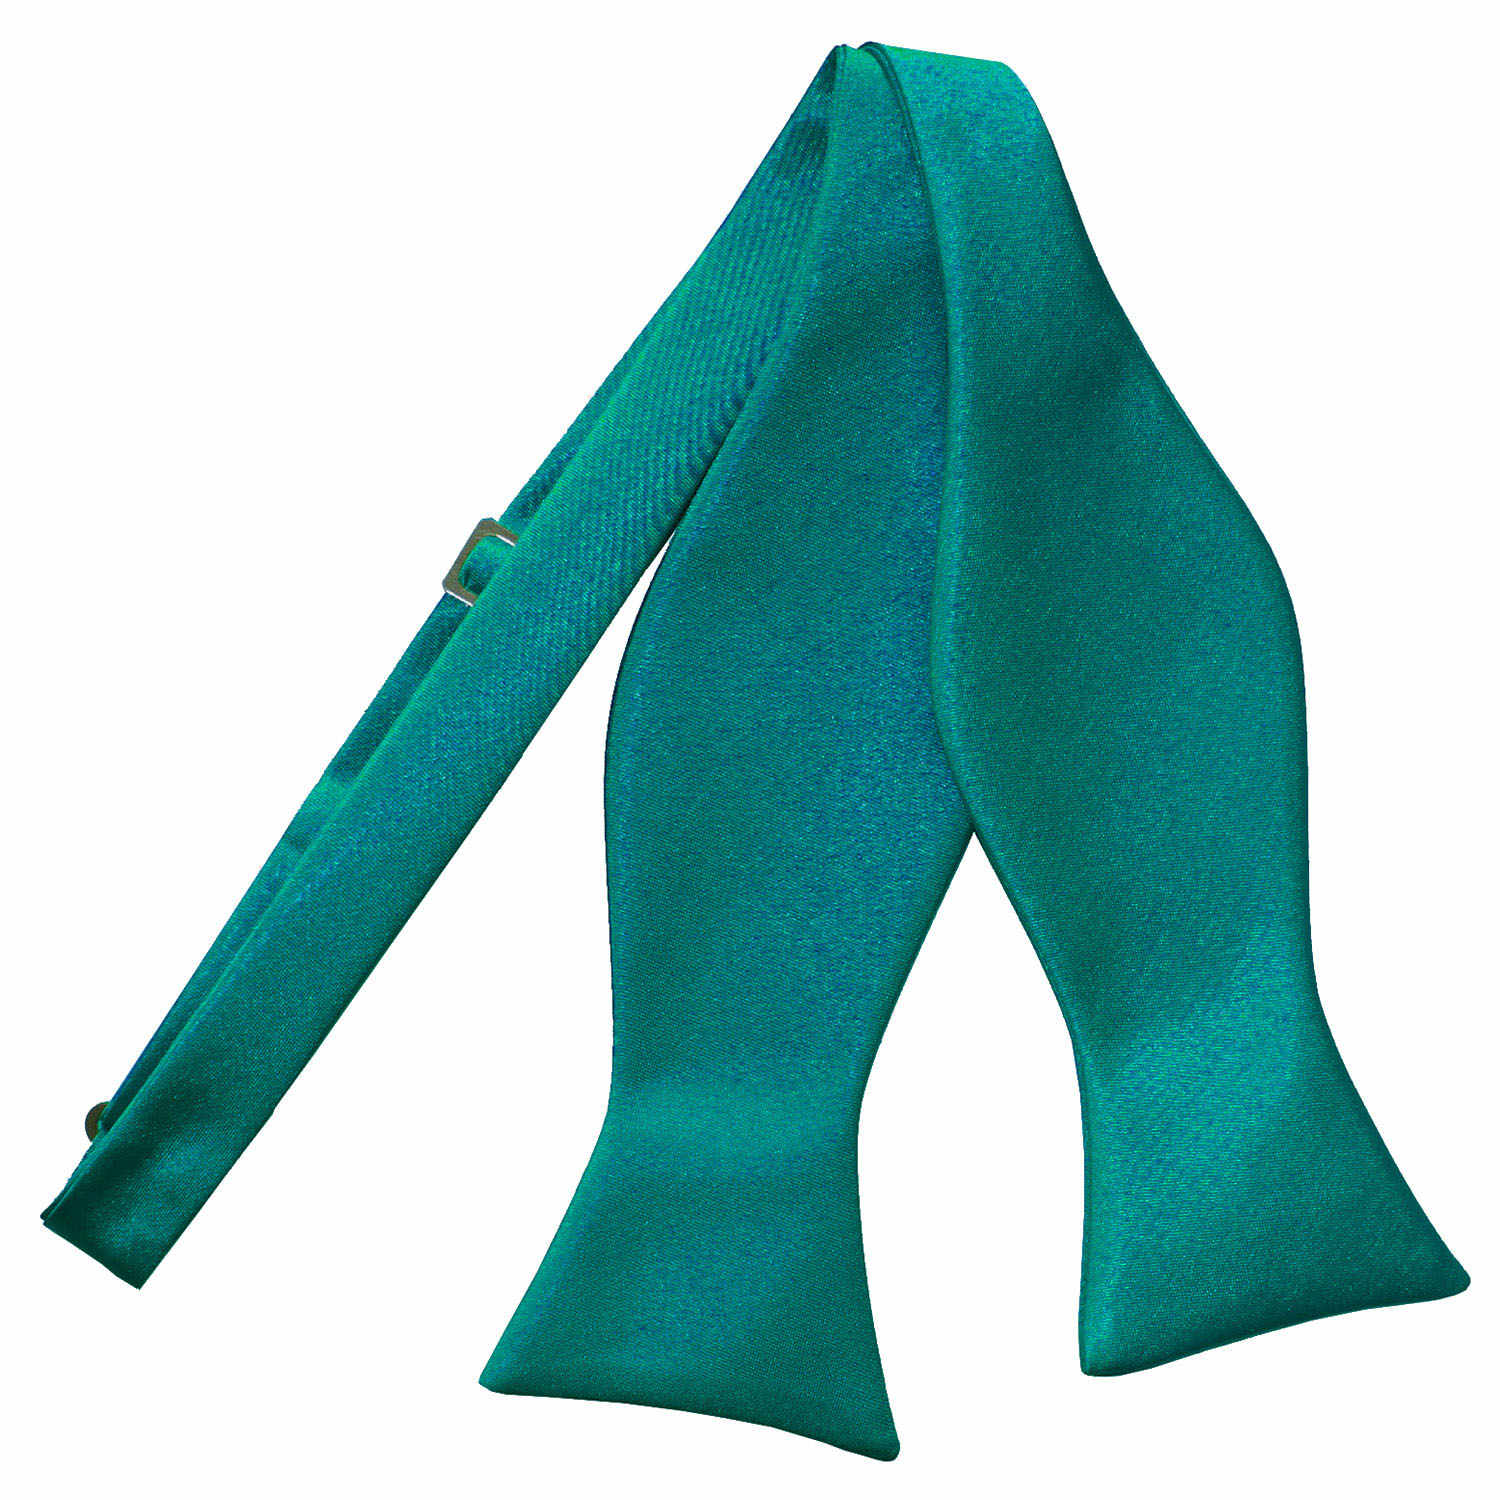 59 Teal Green Bow Tie, Teal Green Peacock Feather Bow Tie Self Tie ...